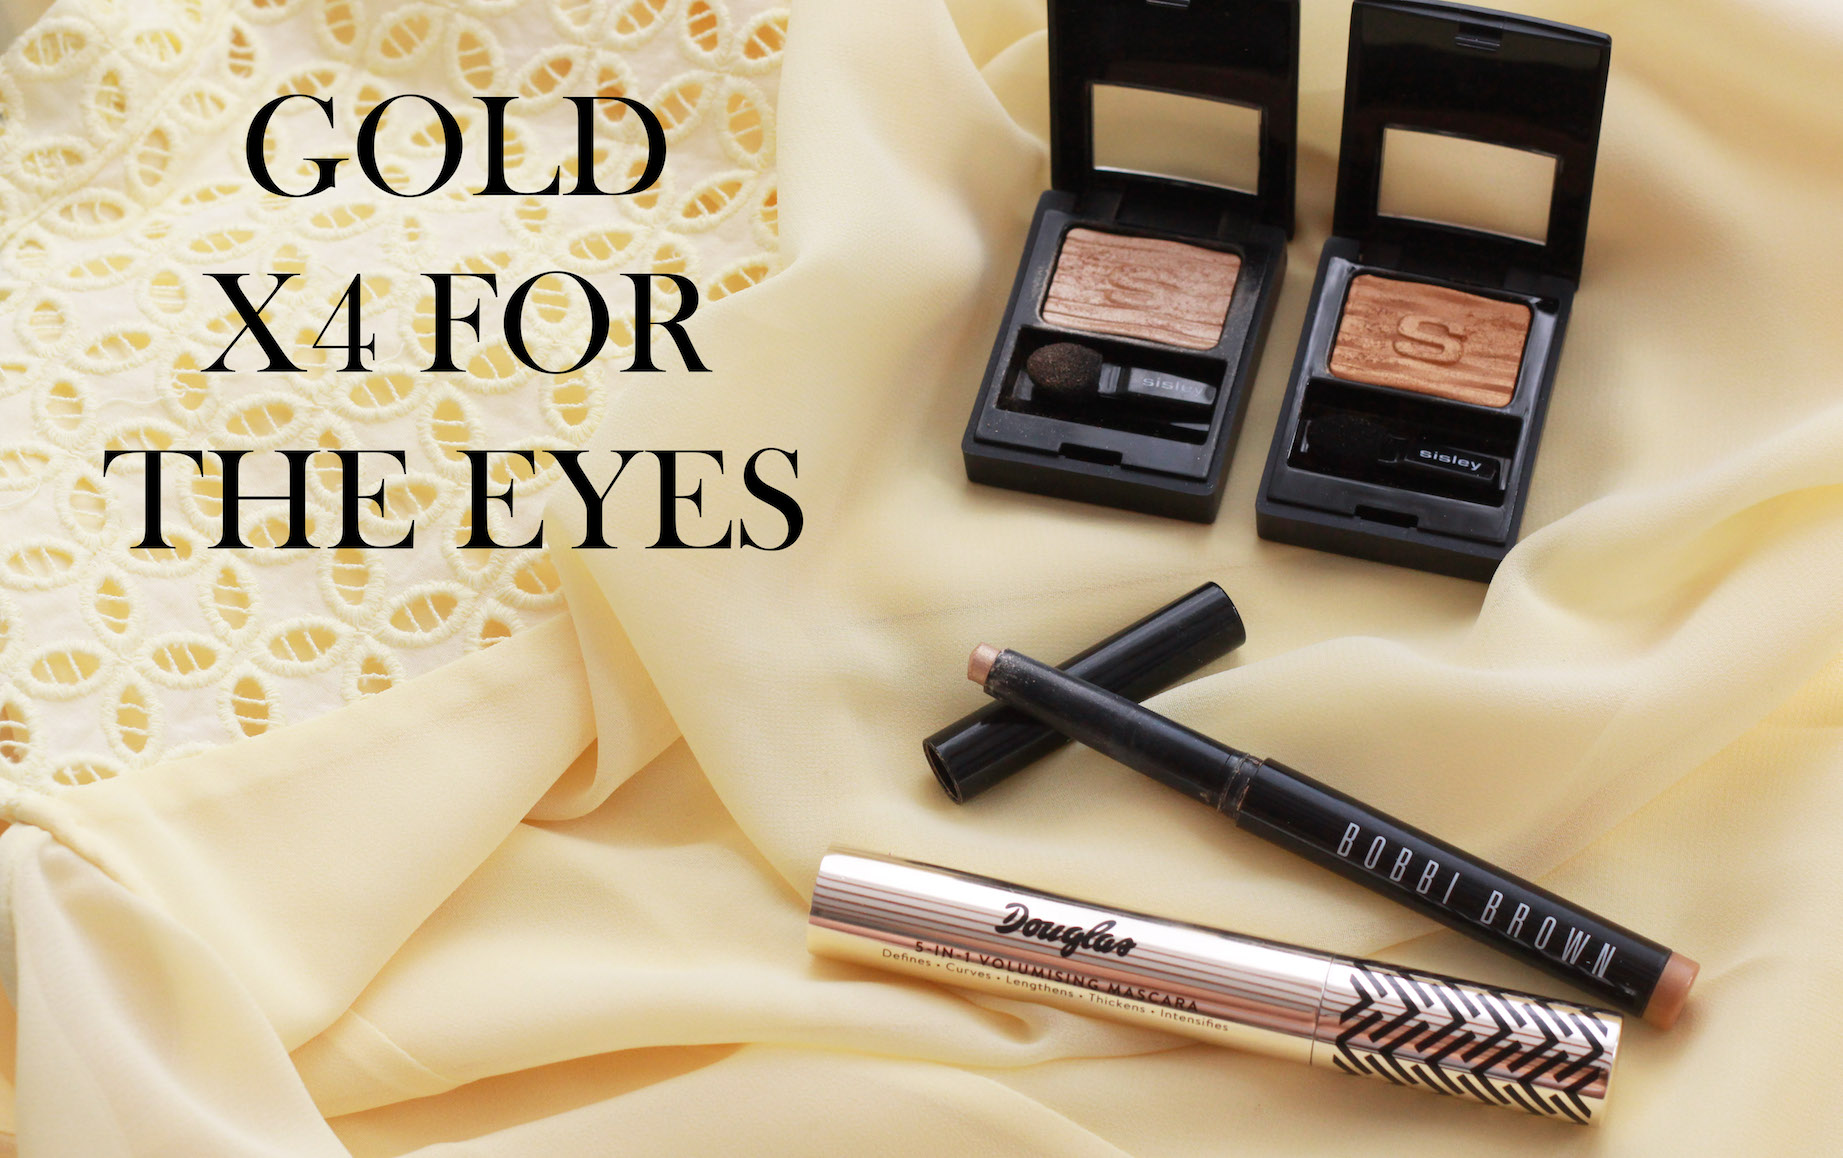 floortjeloves, gold, gold spring make-up, make-up look, comma, H&M, chanel, sisley, bobbi brown, douglas